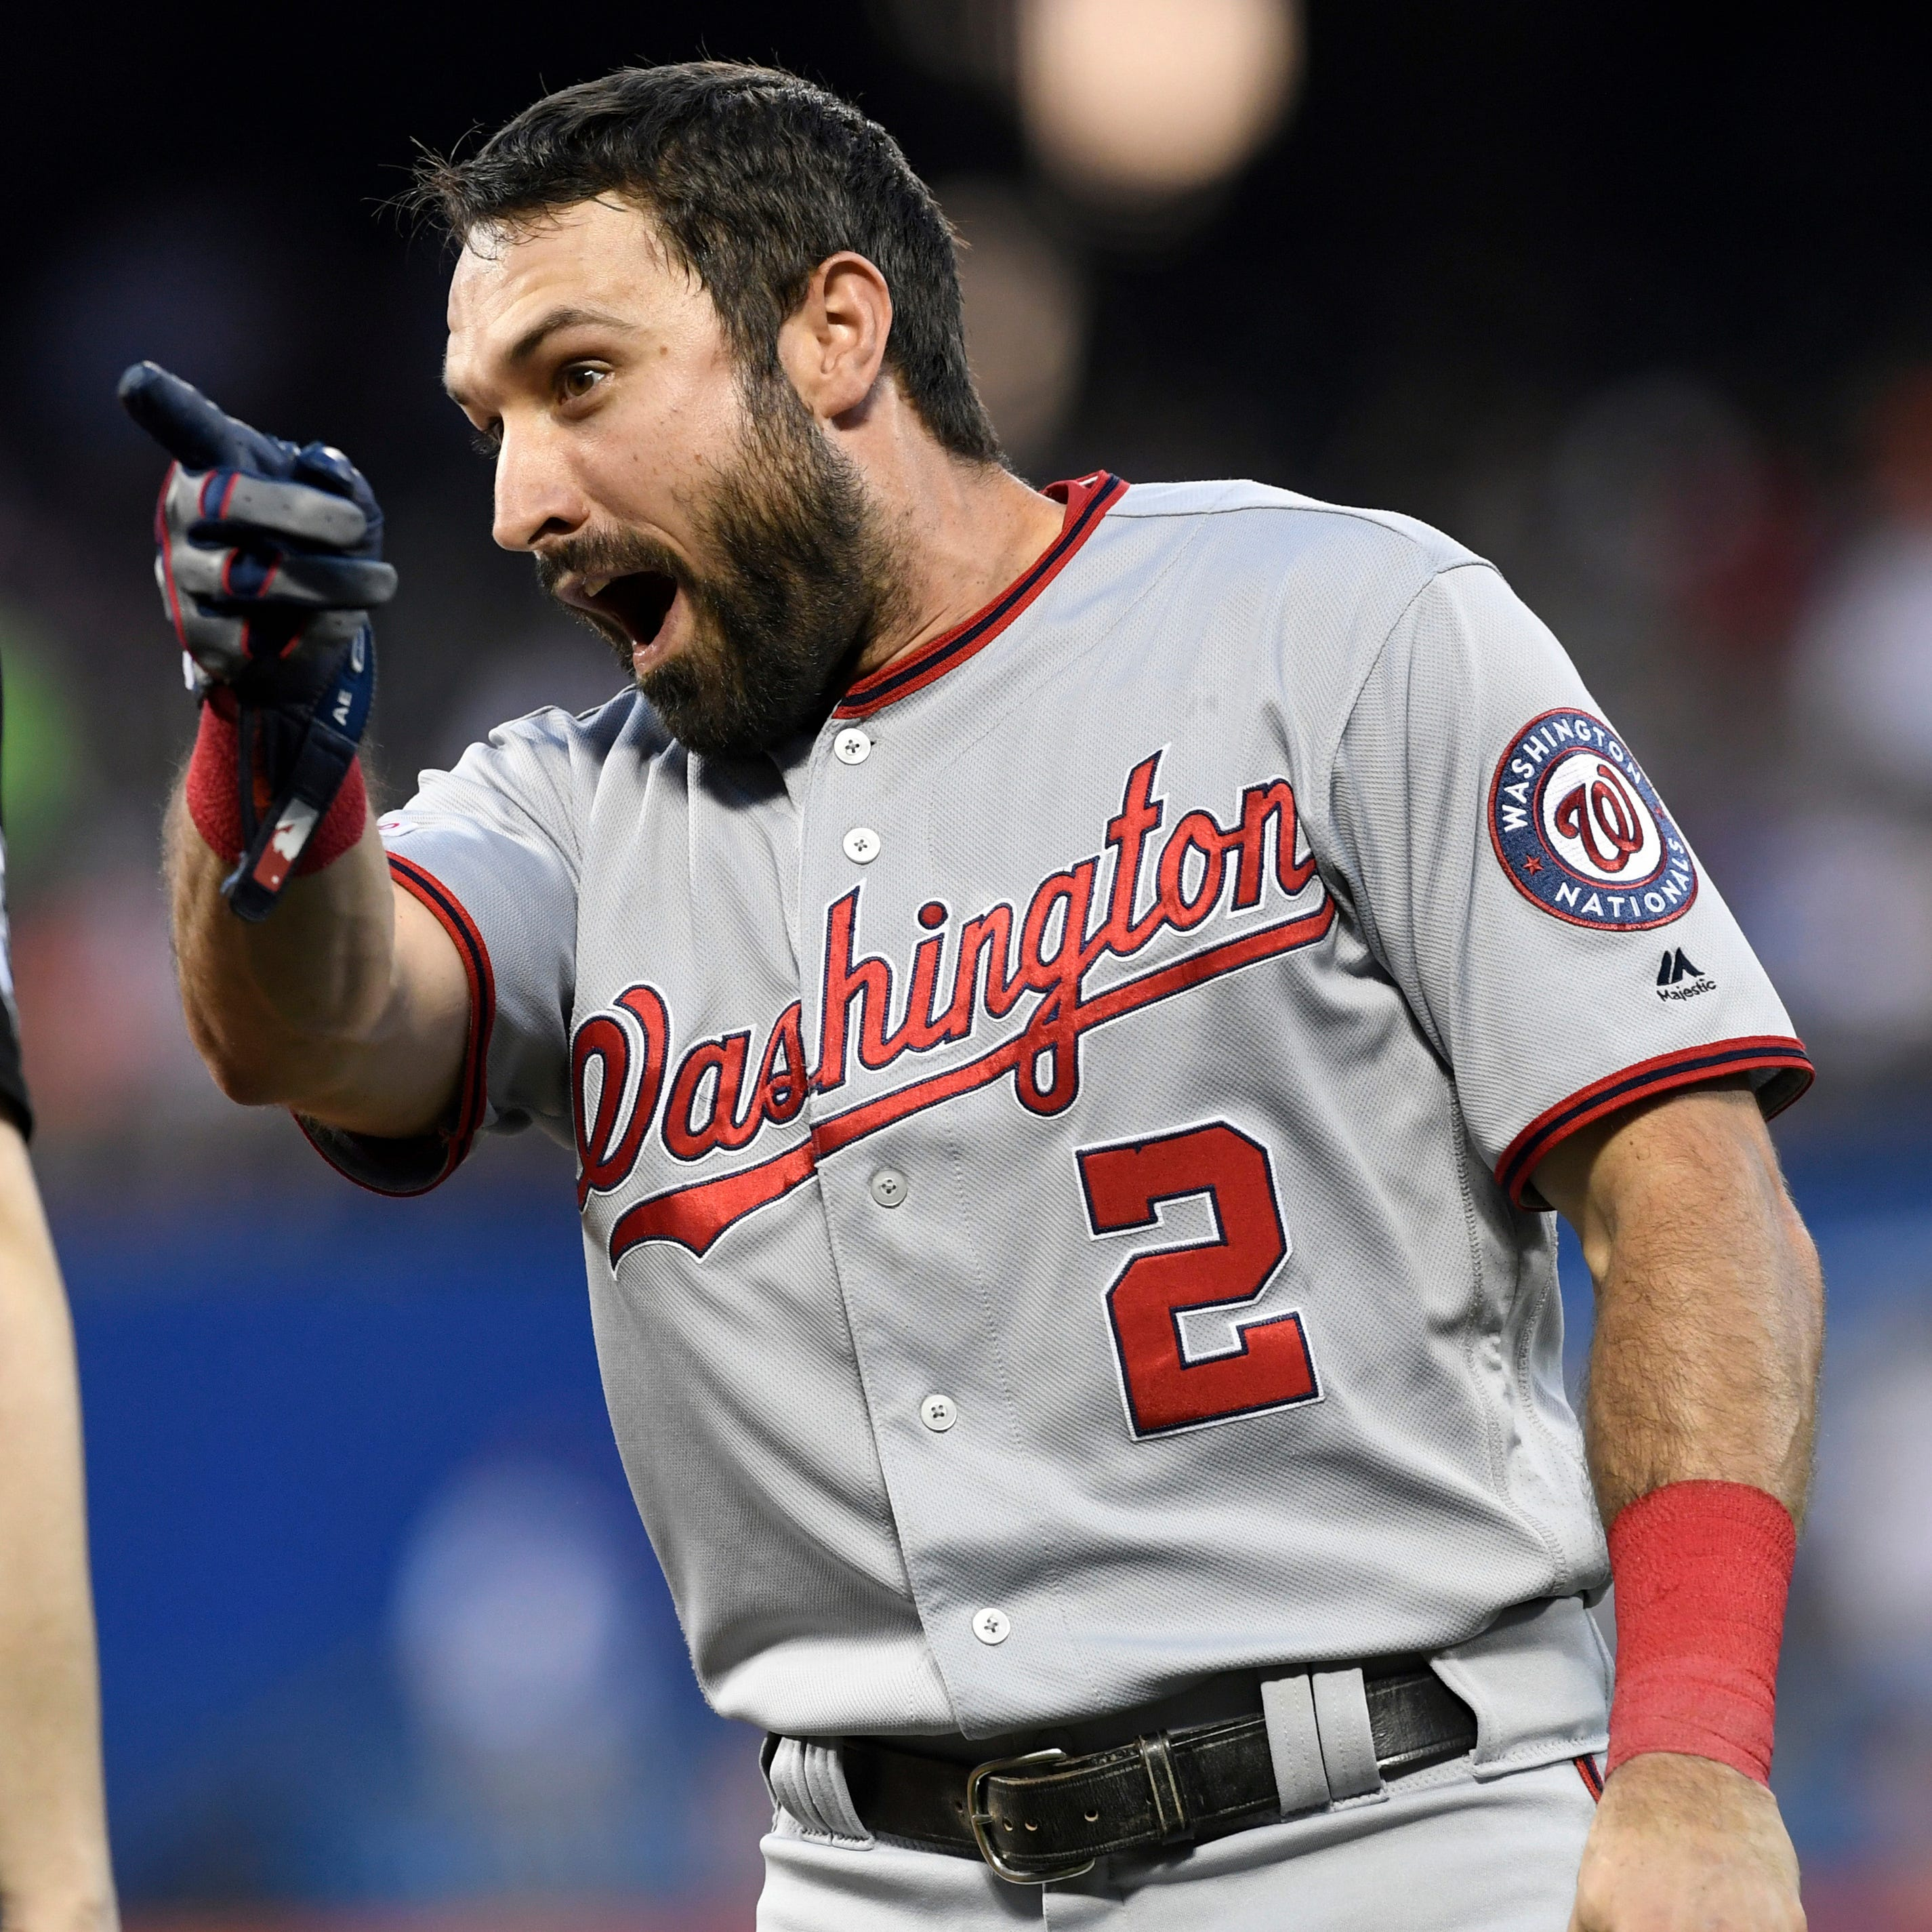 Adam Eaton on Todd Frazier after Mets-Nats squabble: 'He's like an old girlfriend'